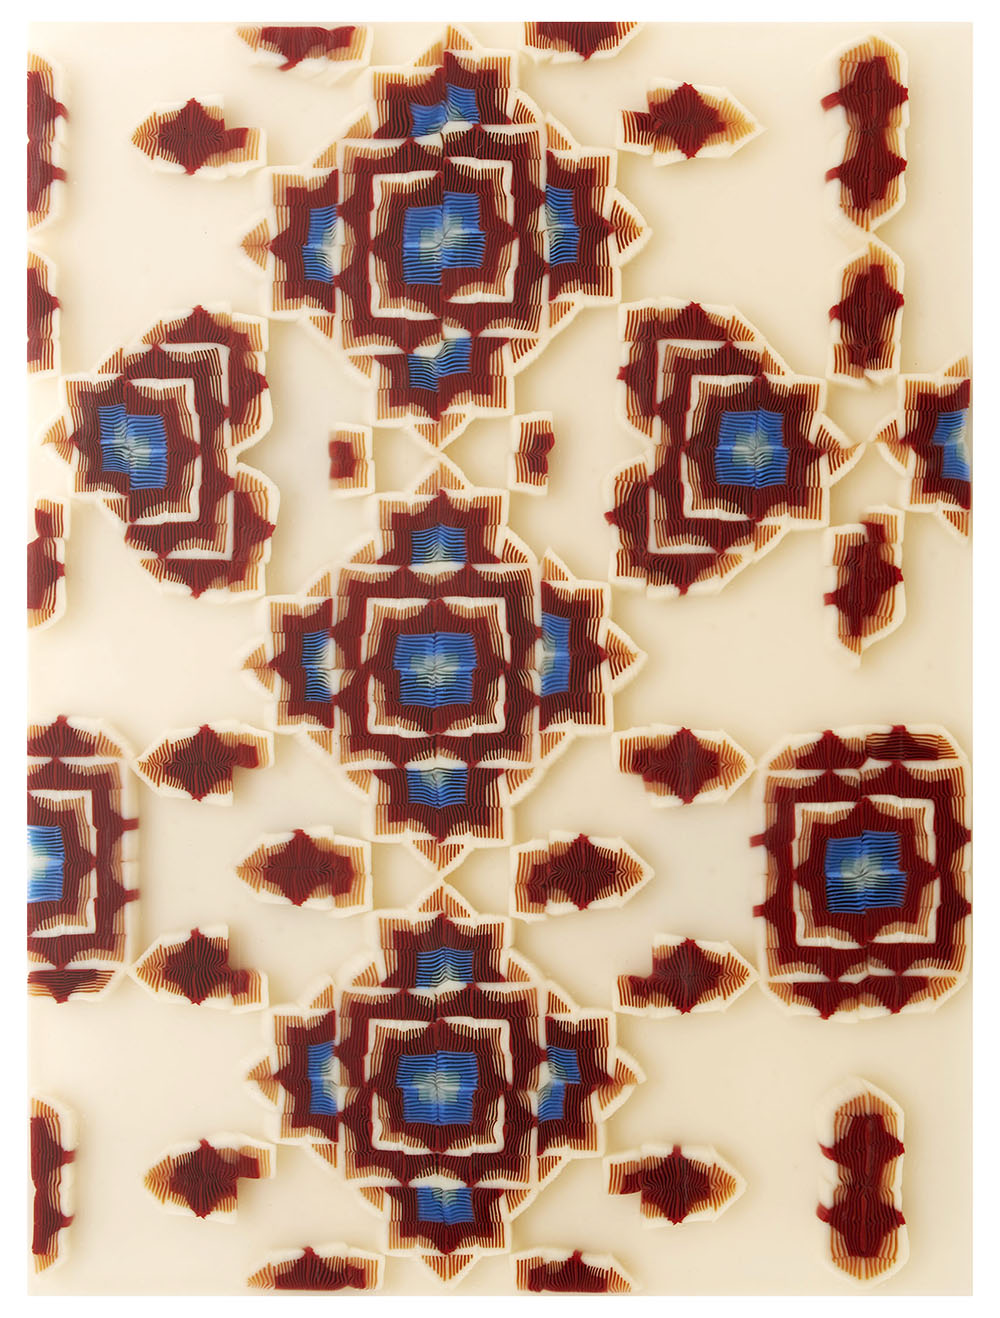 Untitled (Moresque Pattern) No. 4